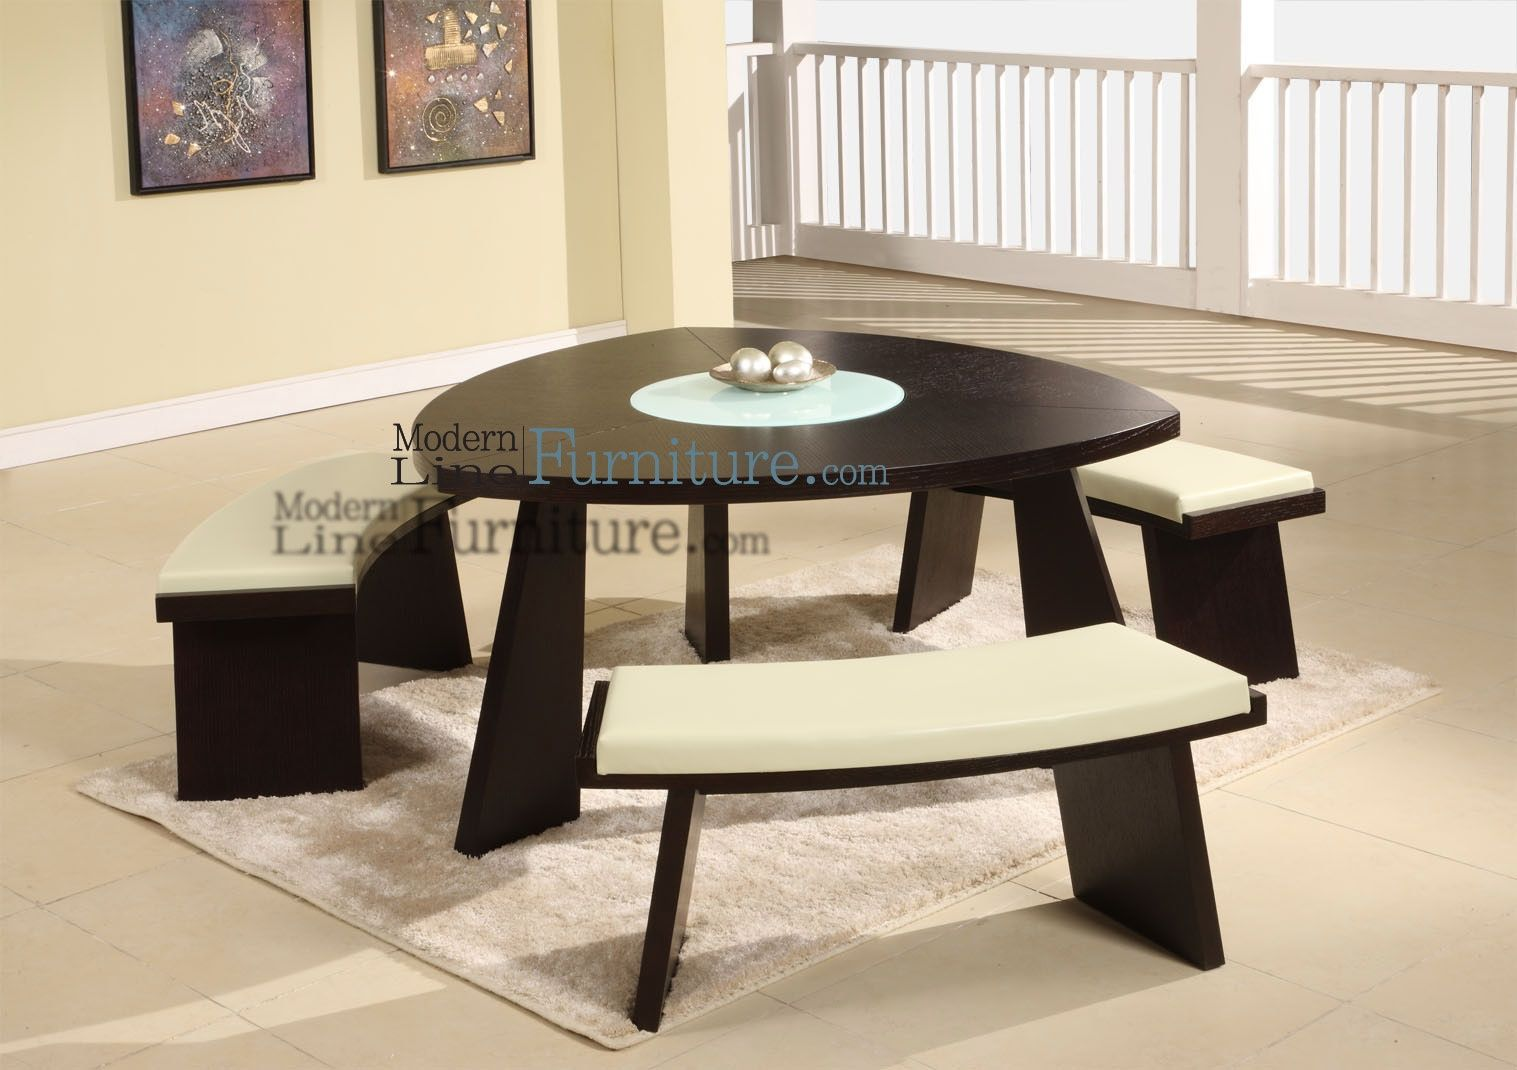 Superbe Triangle Dining Table With Benches Triangular Room Fabulous Decorating Ideas